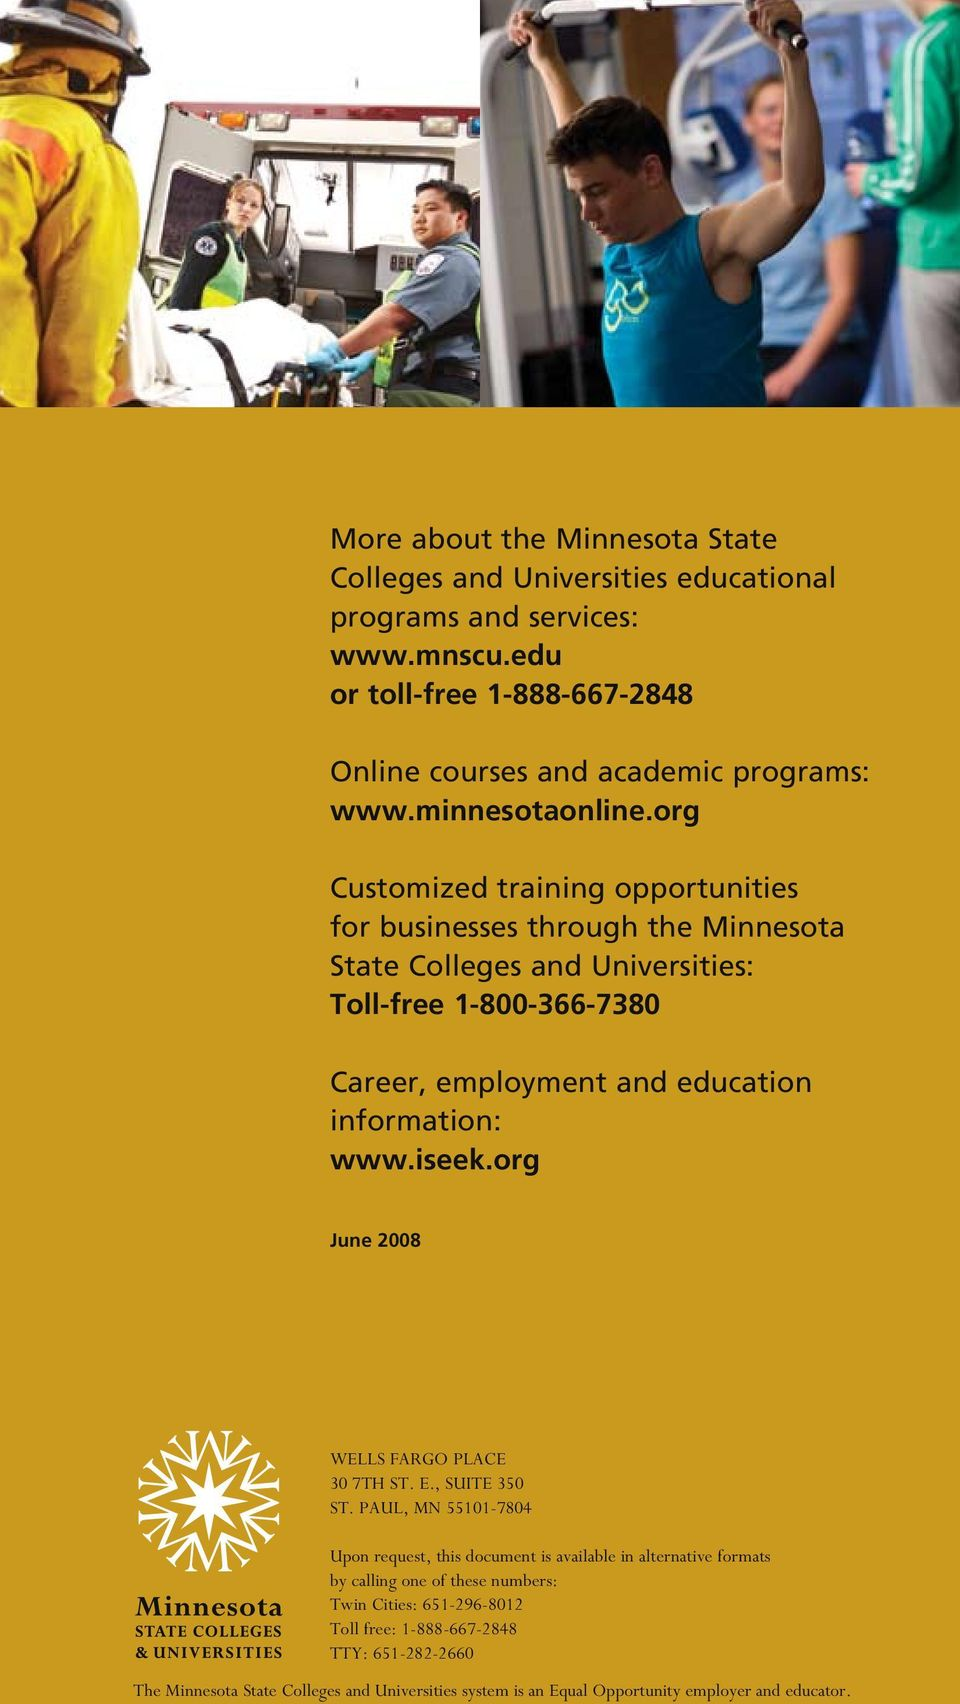 org Customized training opportunities for businesses through the Minnesota State Colleges and Universities: Toll-free 1-800-366-7380 Career, employment and education information: